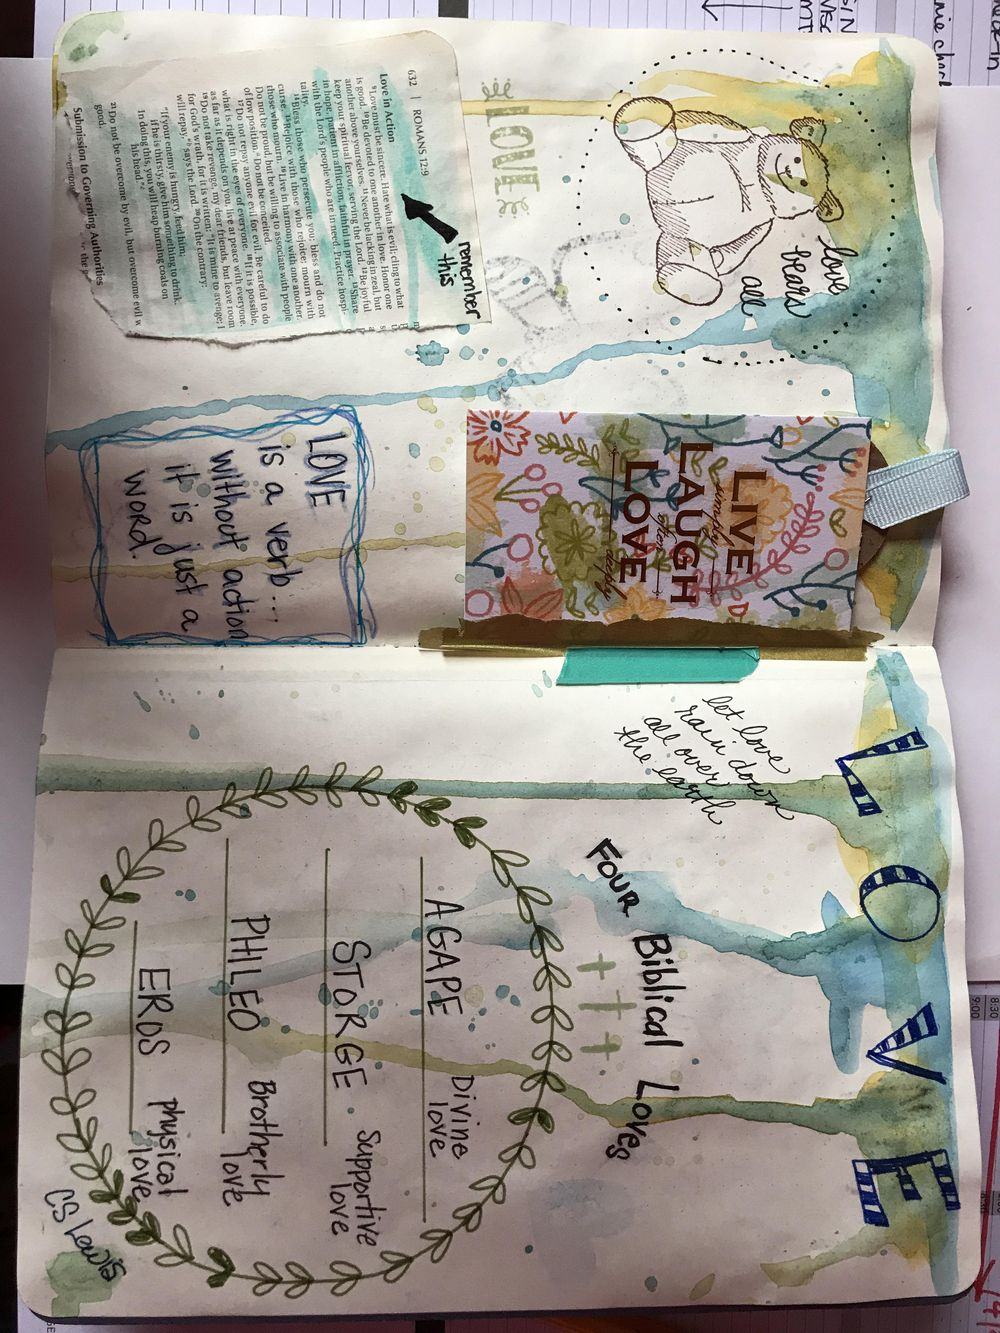 Watercolor journaling - image 2 - student project